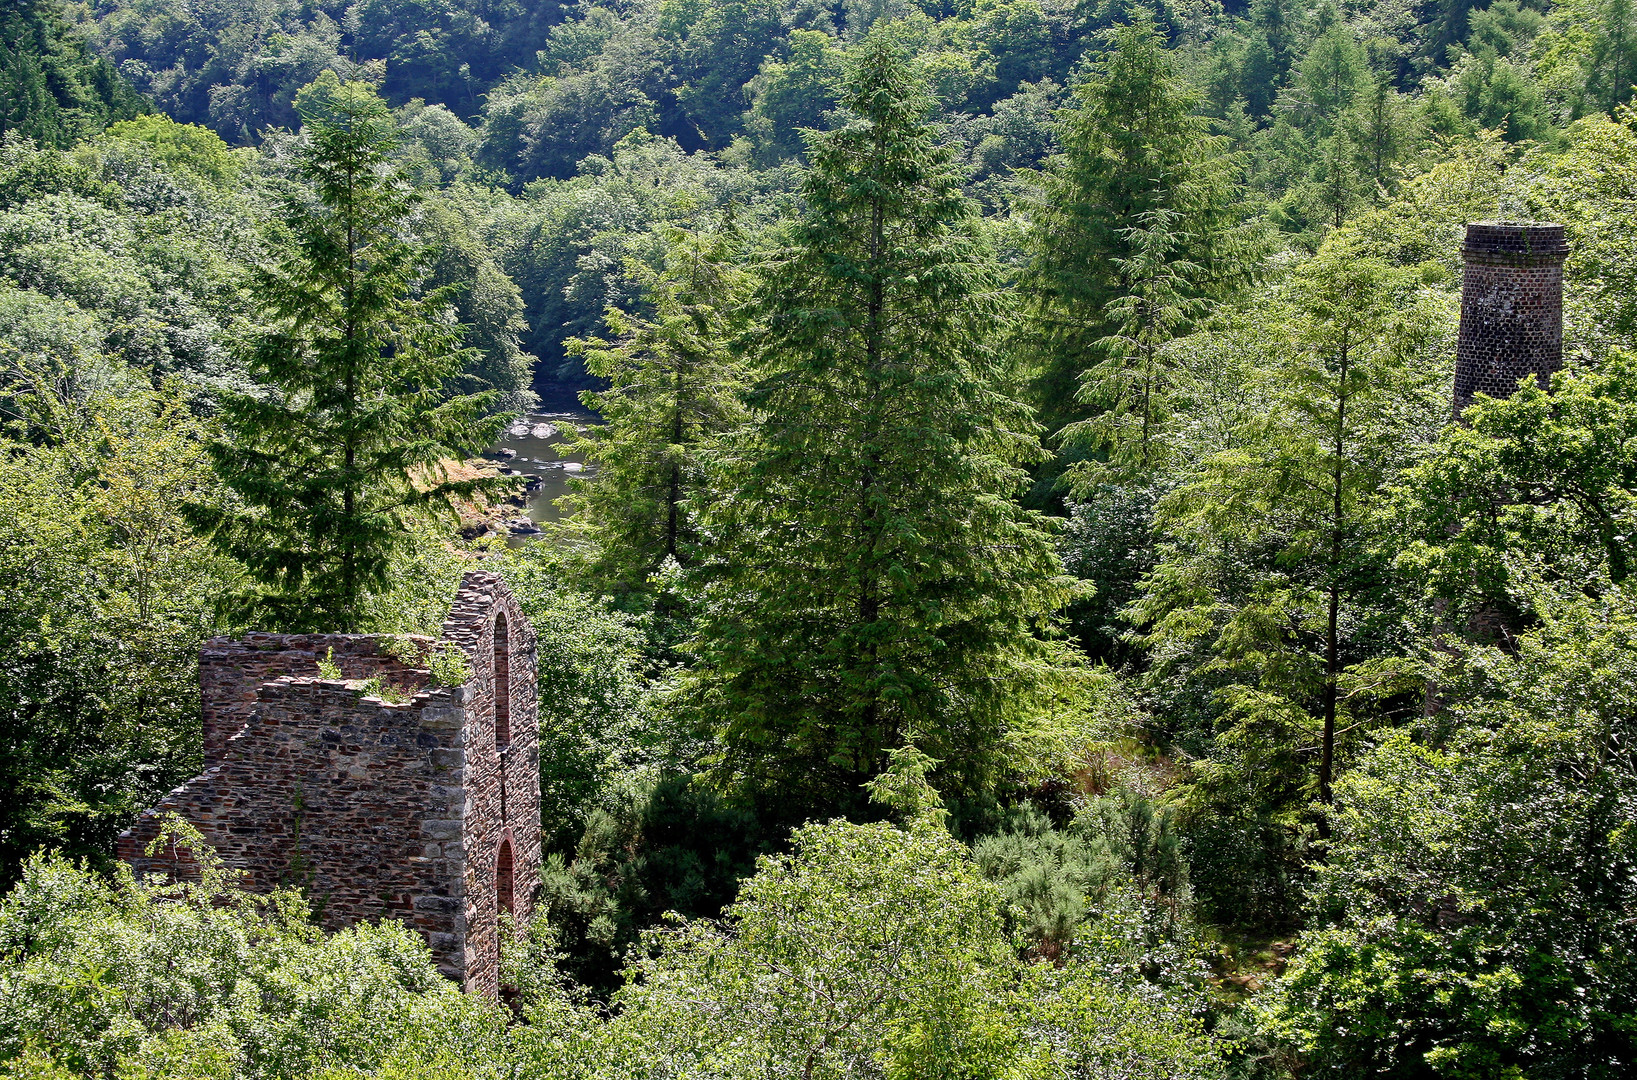 Gunnislake Clitters Riverside Engine House - Barry Gamble © Cornwall Council